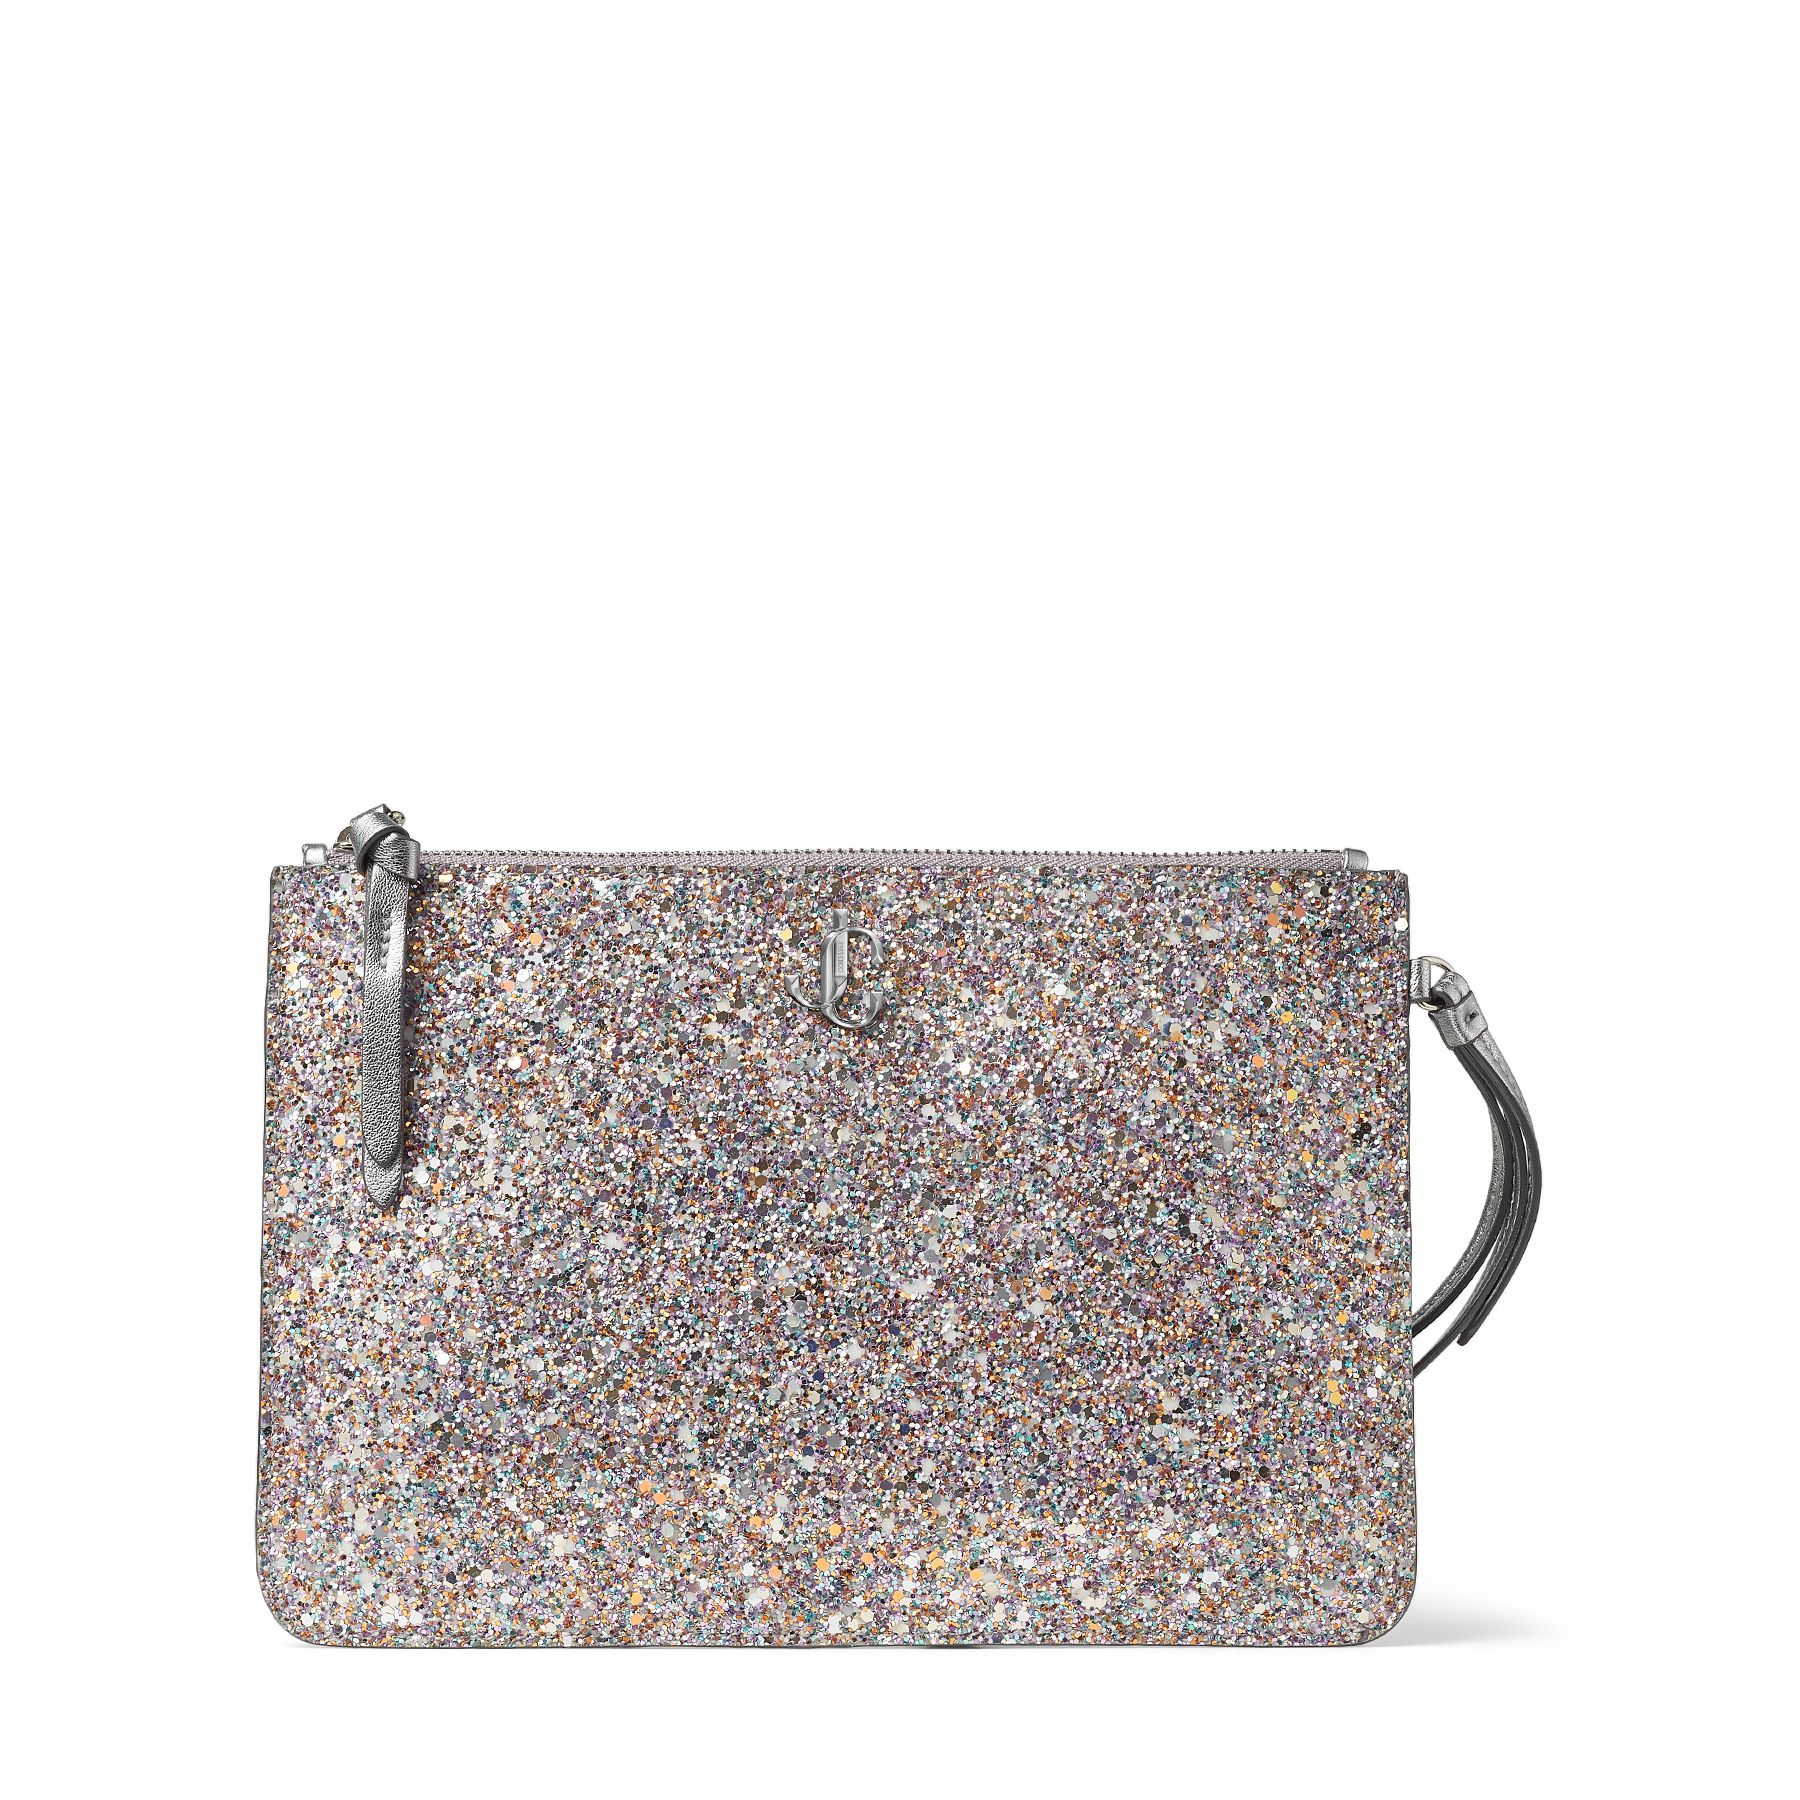 For moments when you don\\\'t need to carry a lot, our luminous glow-in-the-dark glitter fabric FARA wristlet pouch is a chic option. It\\\'s crafted to a slender structured shape that\\\'s embellished with the signature JC emblem. Carry it both day and night, zipping your absolute essentials in the compact interior.